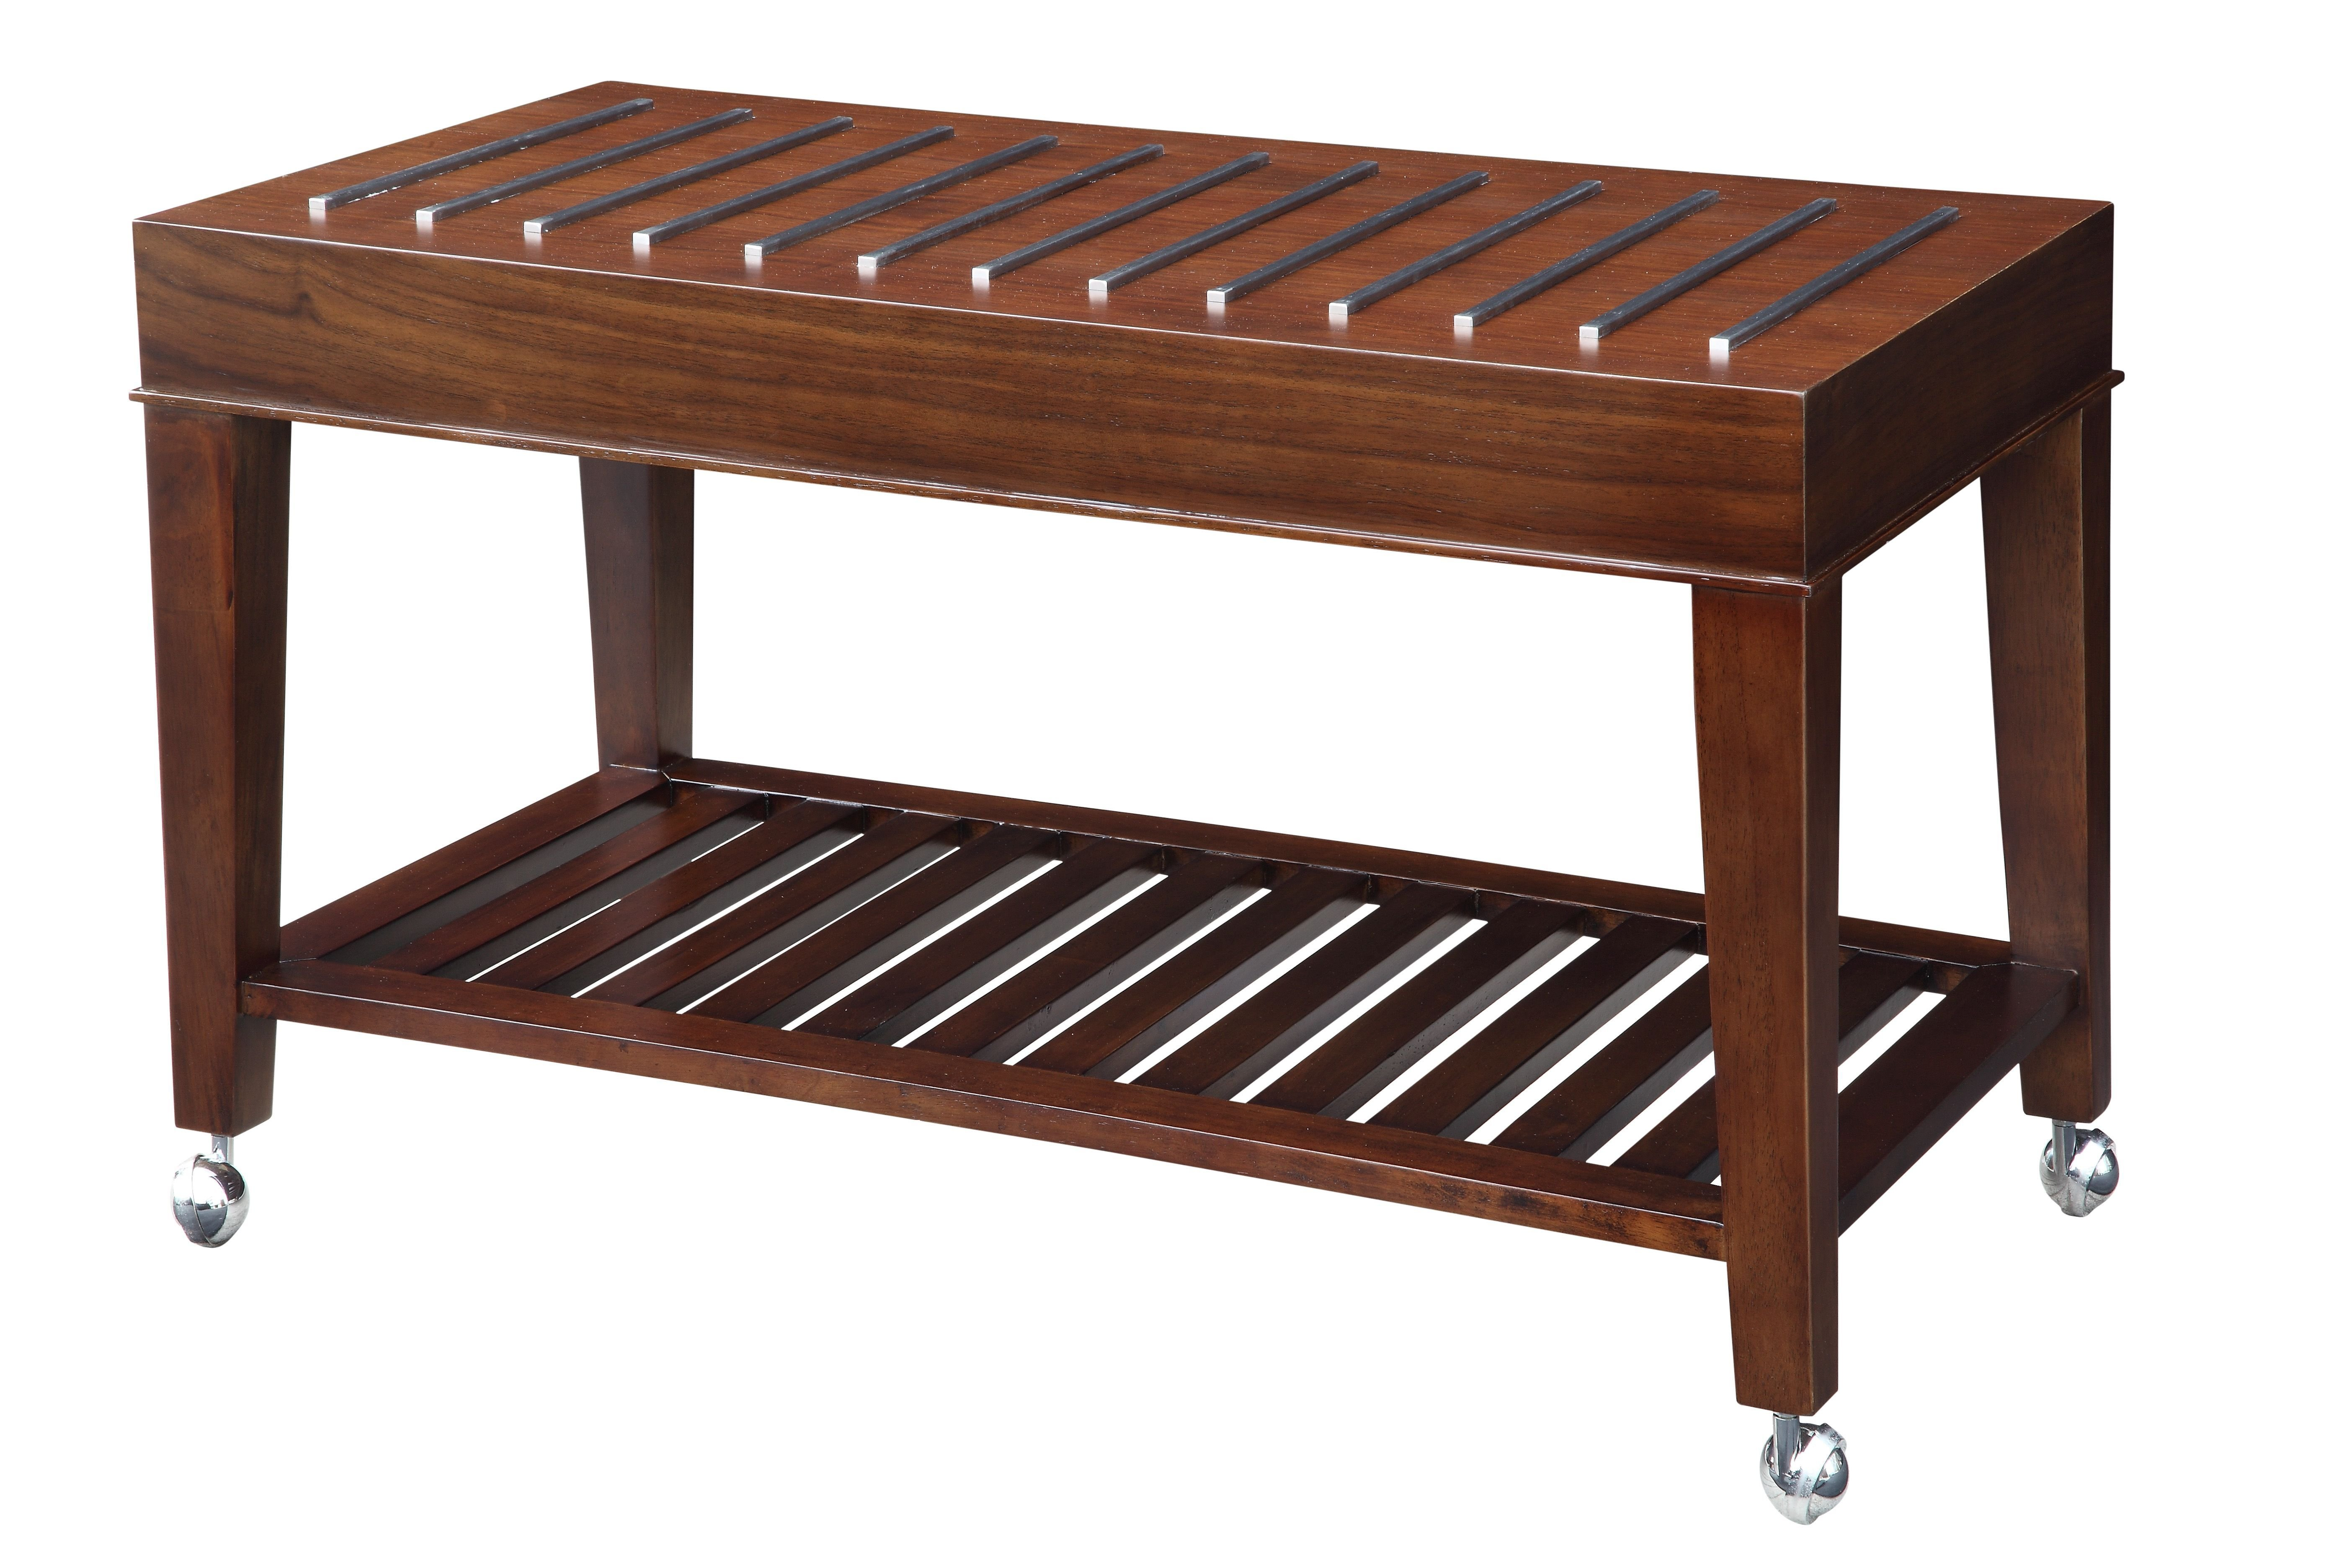 Best Epicurean Luggage Rack 8279 Wood Working In 2019 With Pictures